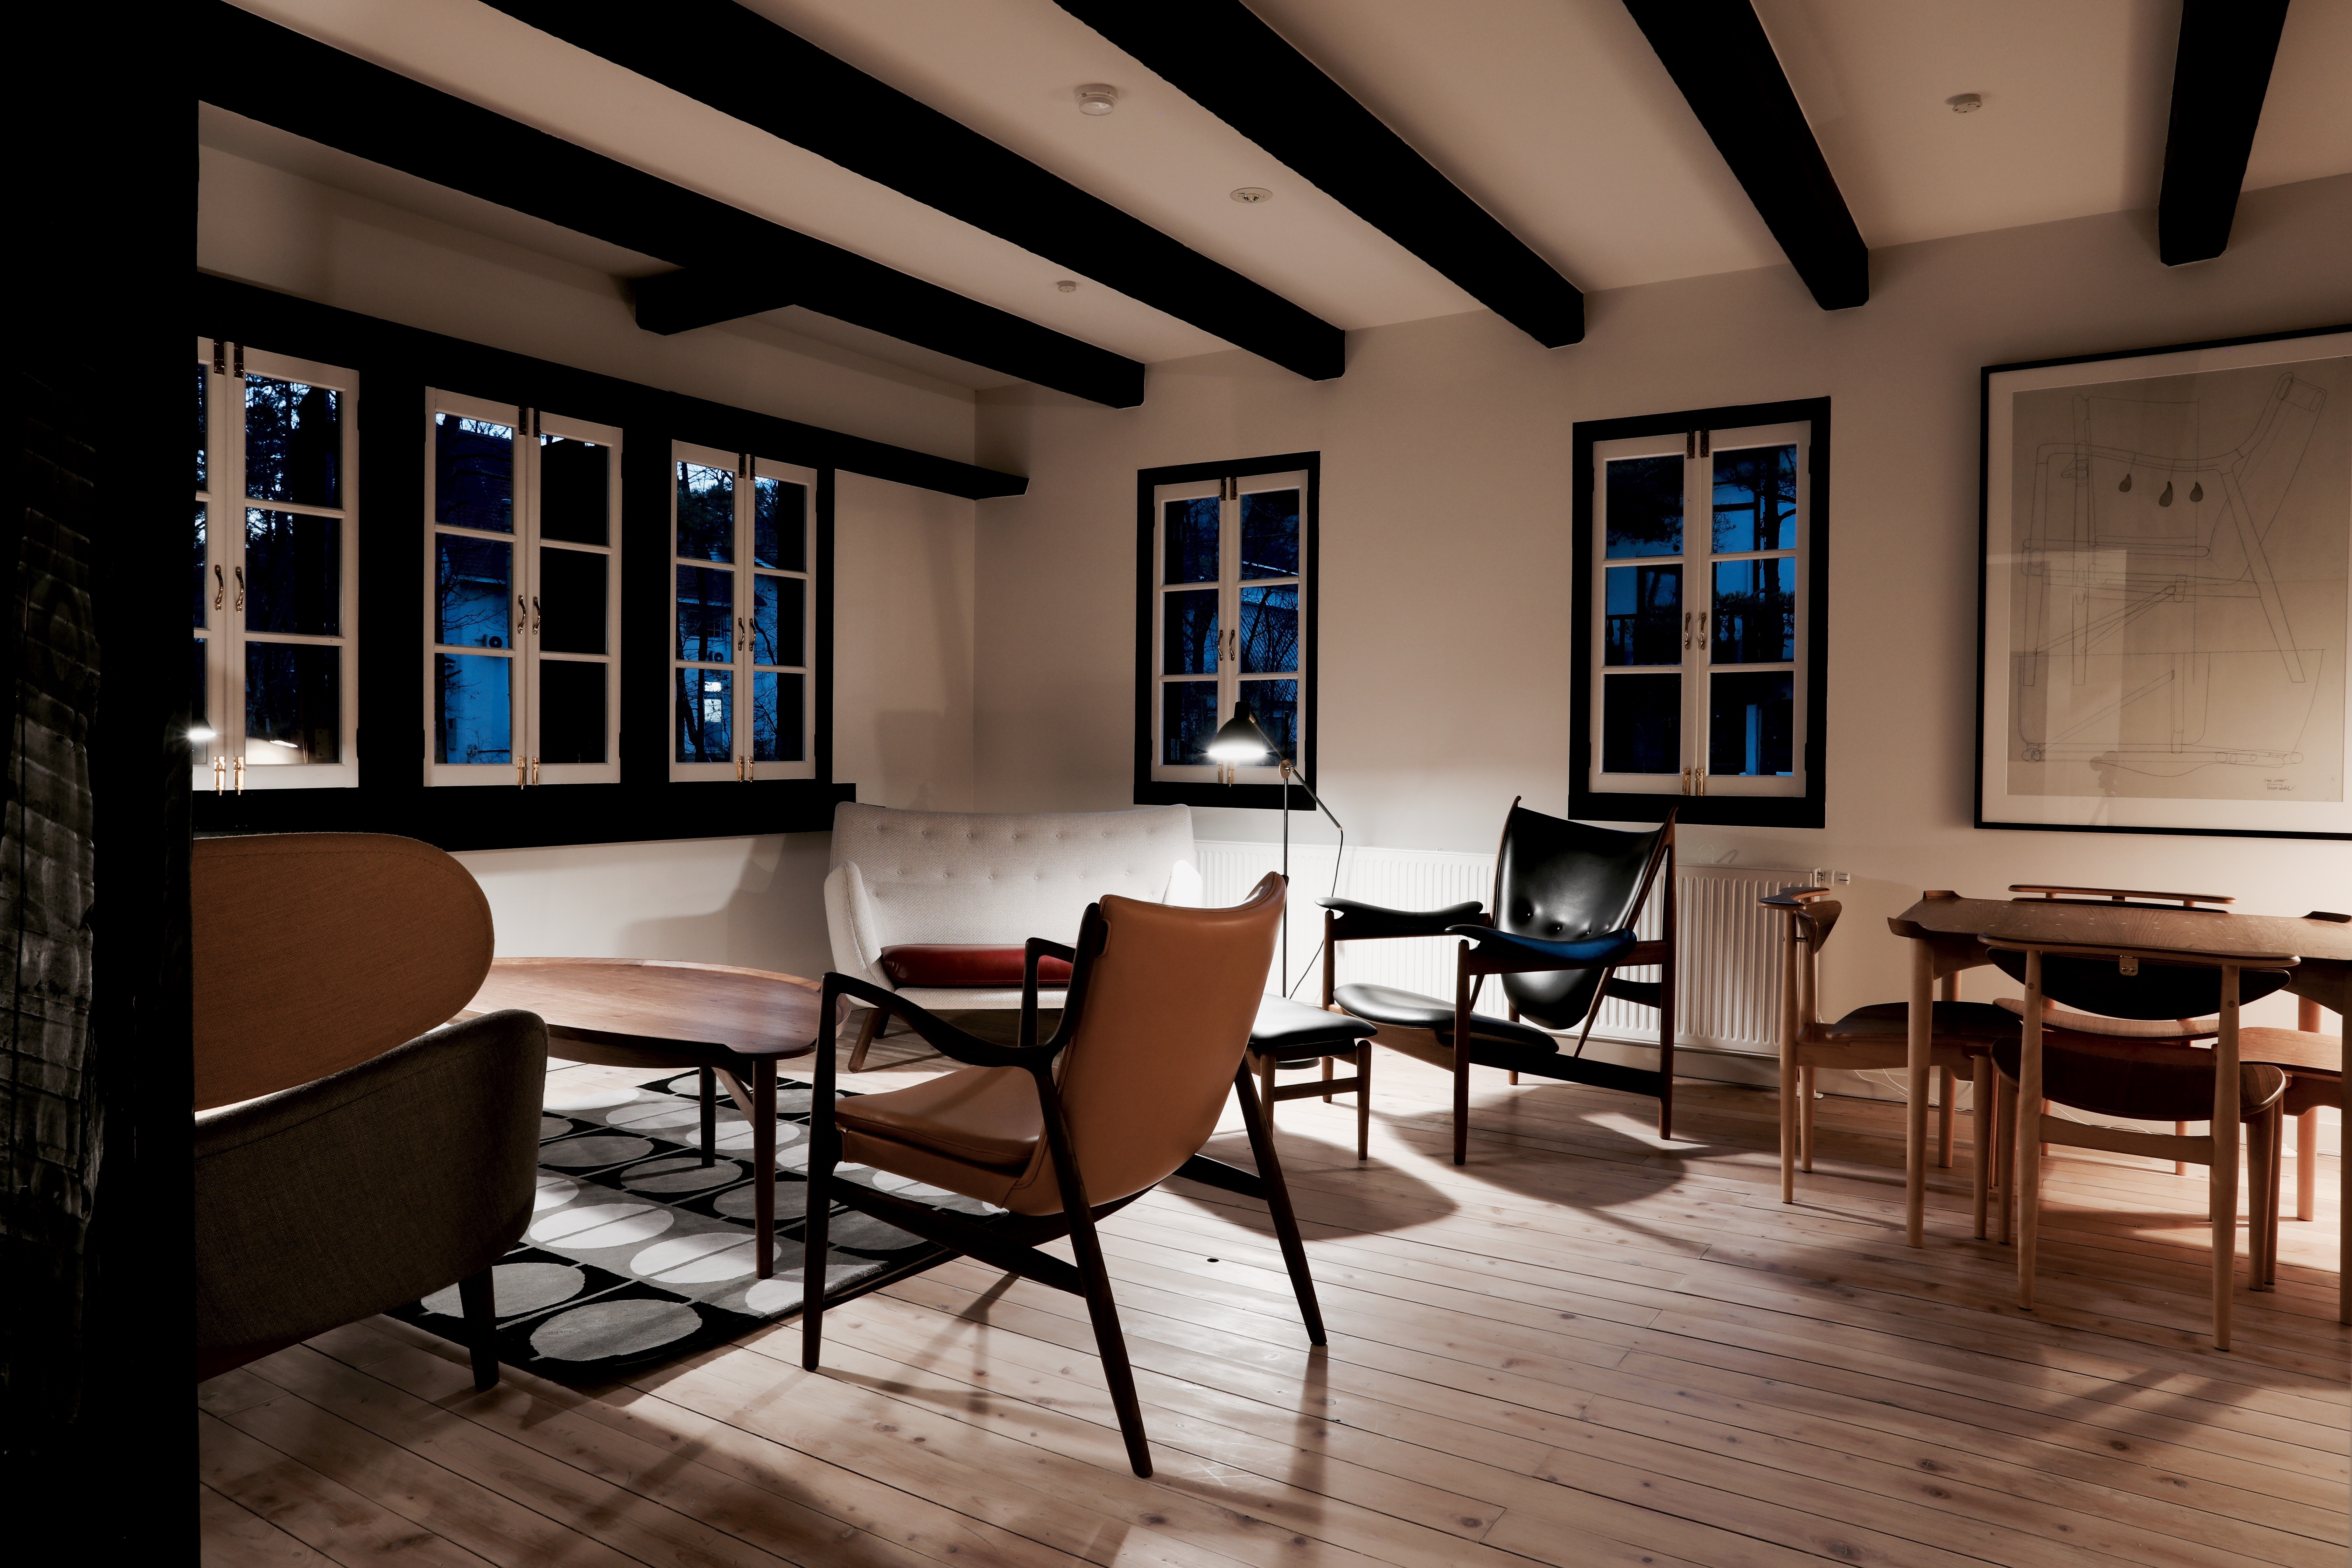 finn juhl hotel hakuba denmark design. Black Bedroom Furniture Sets. Home Design Ideas